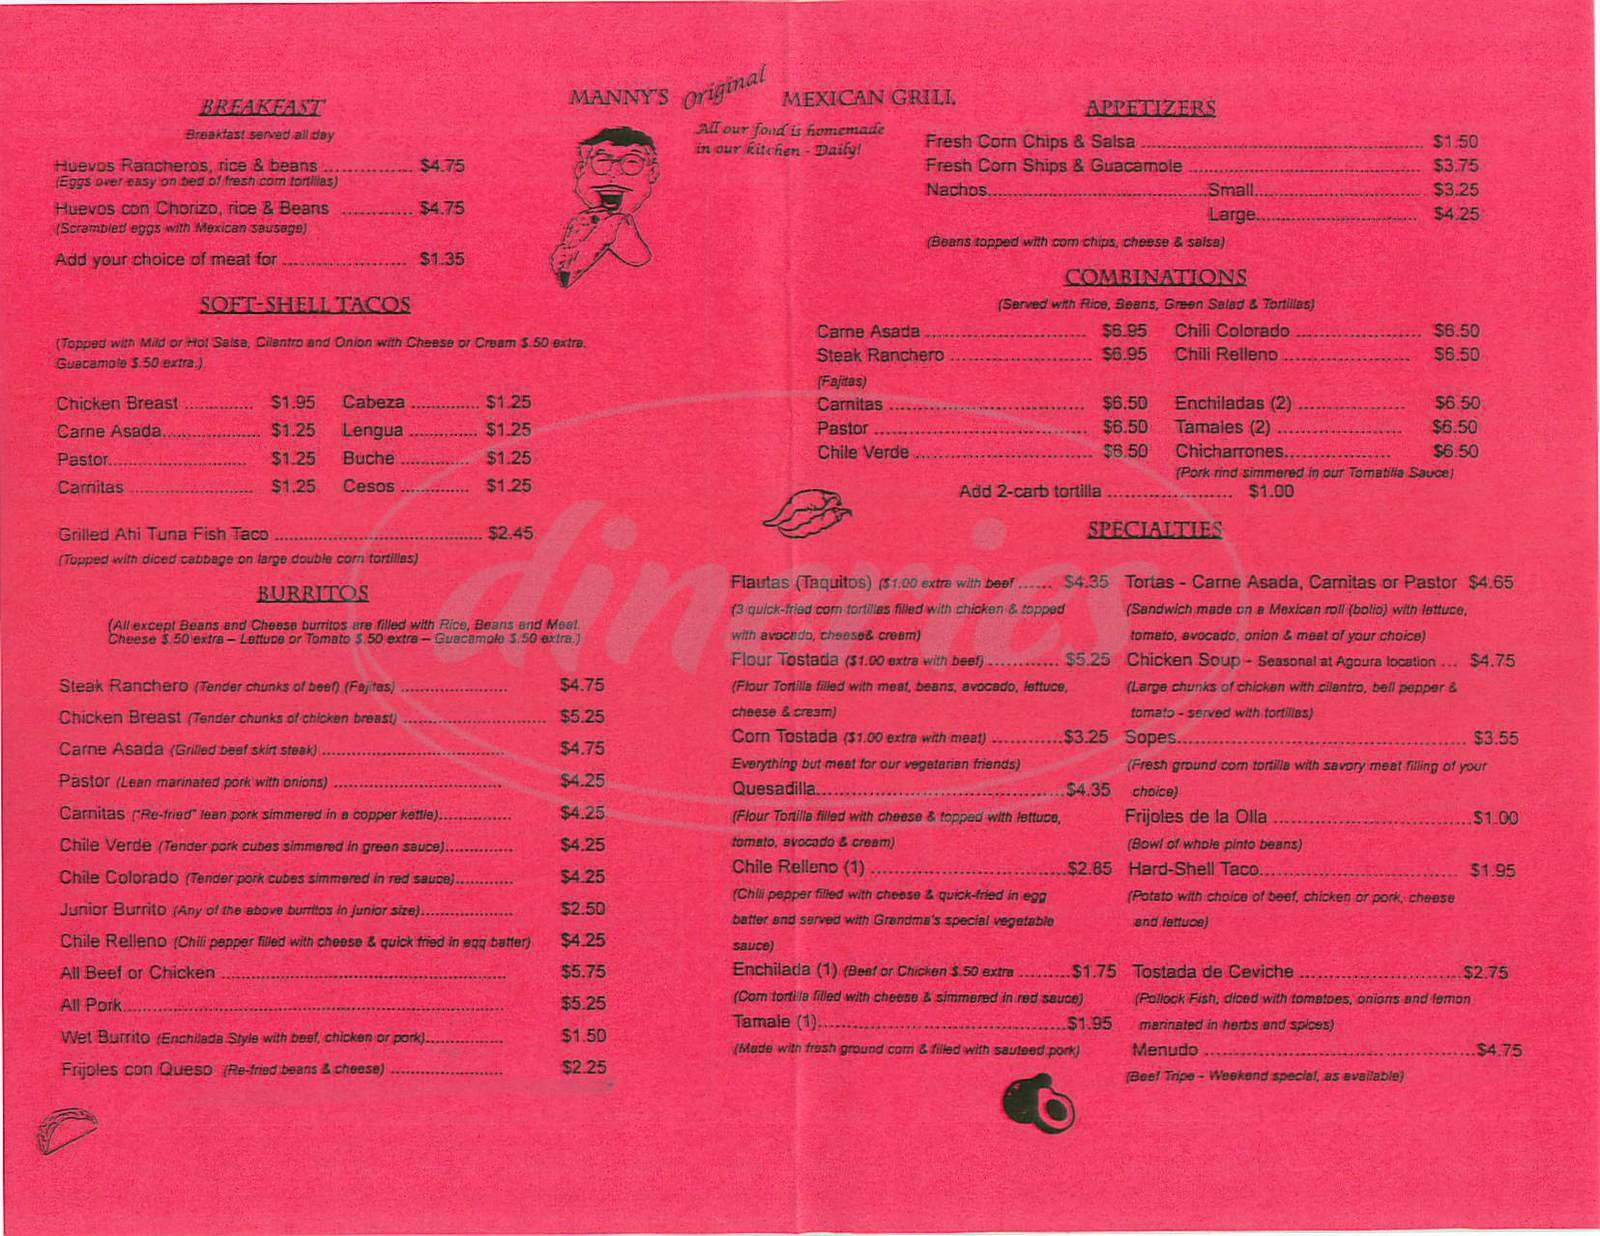 menu for Mannys Mexican Grill